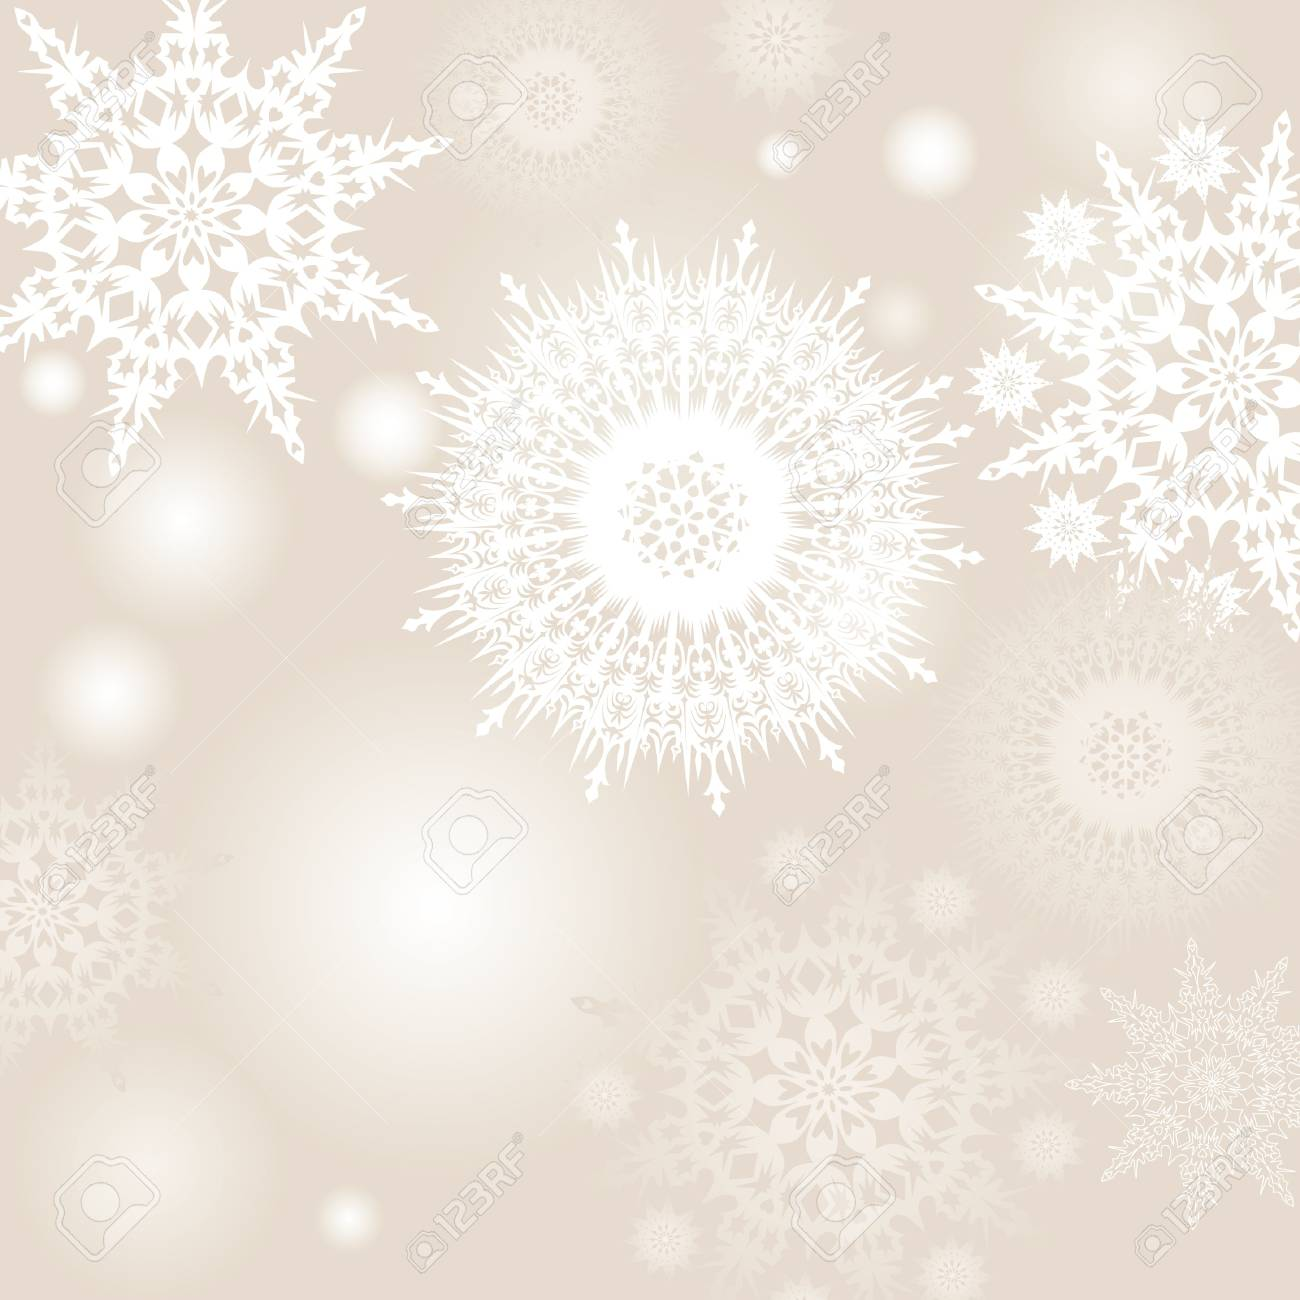 snowflakes vector background Stock Vector - 16229404